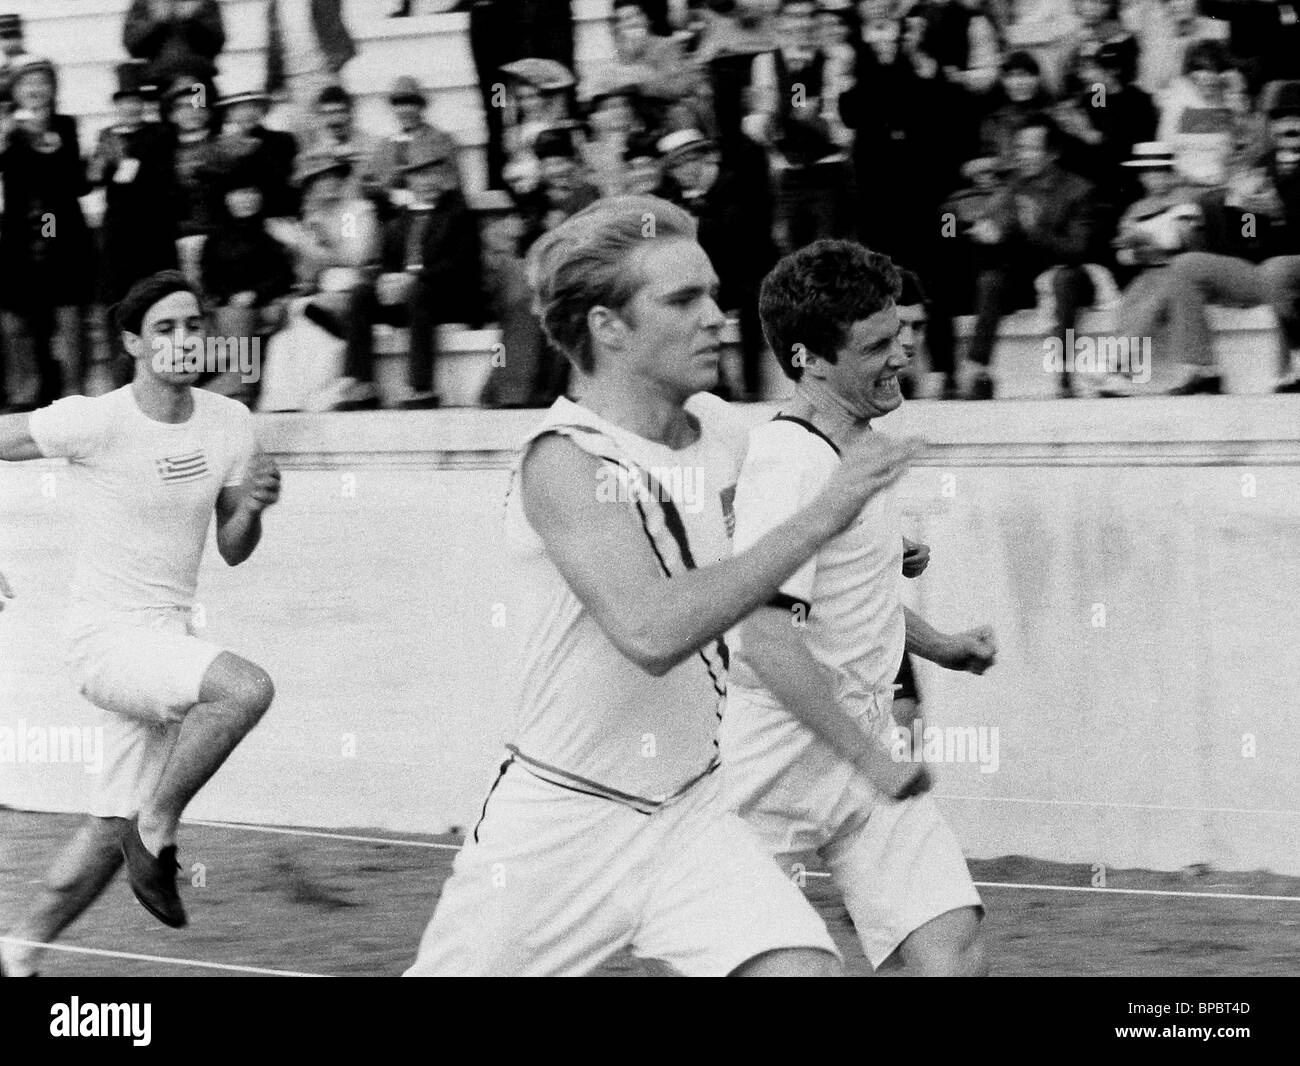 JASON CONNERY THE FIRST OLYMPICS:ATHENS 1896 (1984) - Stock Image